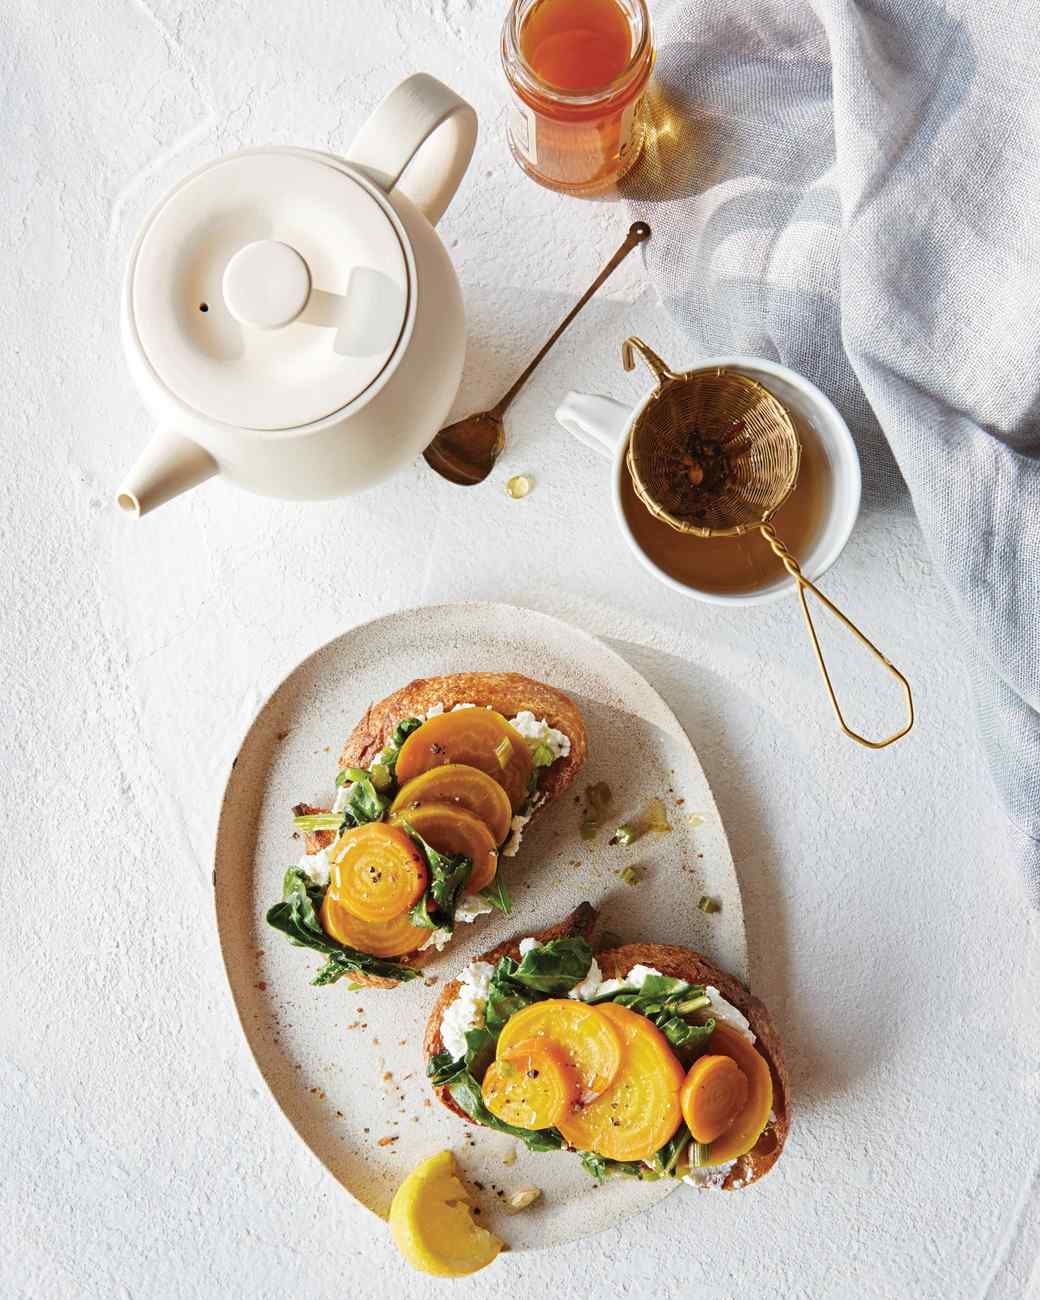 Golden Beets with Greens and Ricotta on Toast